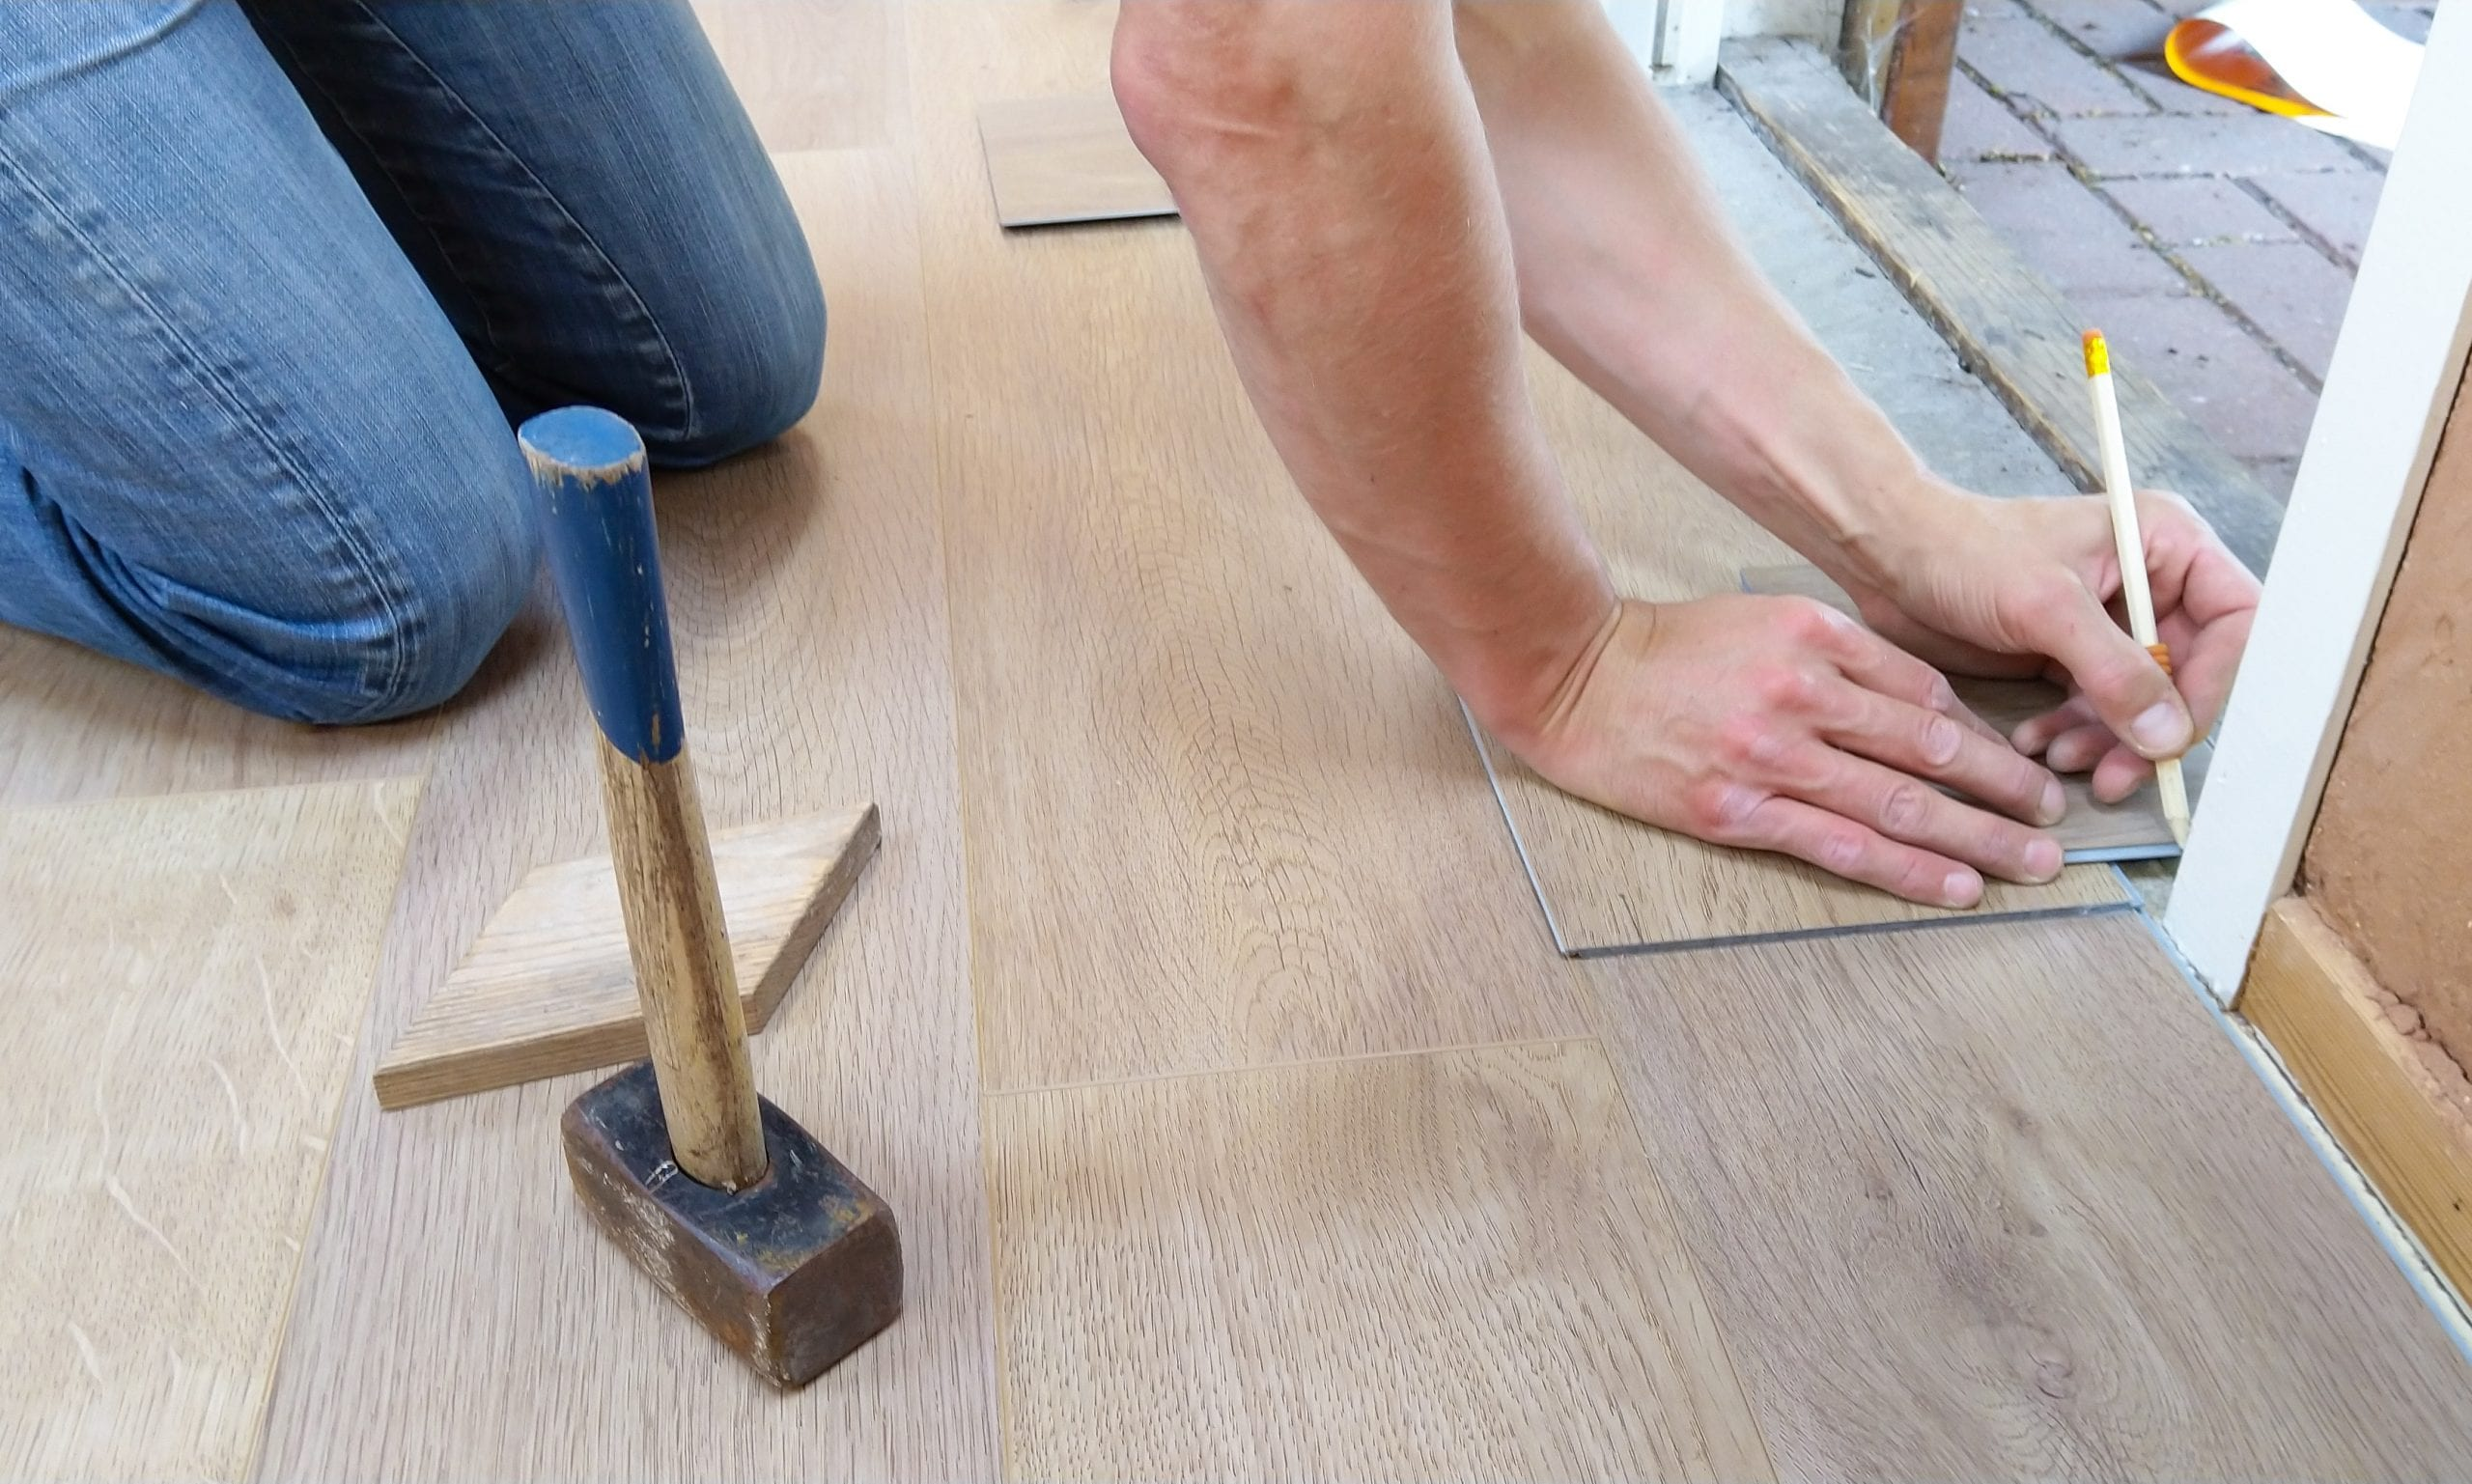 How To Install Vinyl Plank Flooring On, How To Prep A Concrete Floor For Laminate Flooring Installation